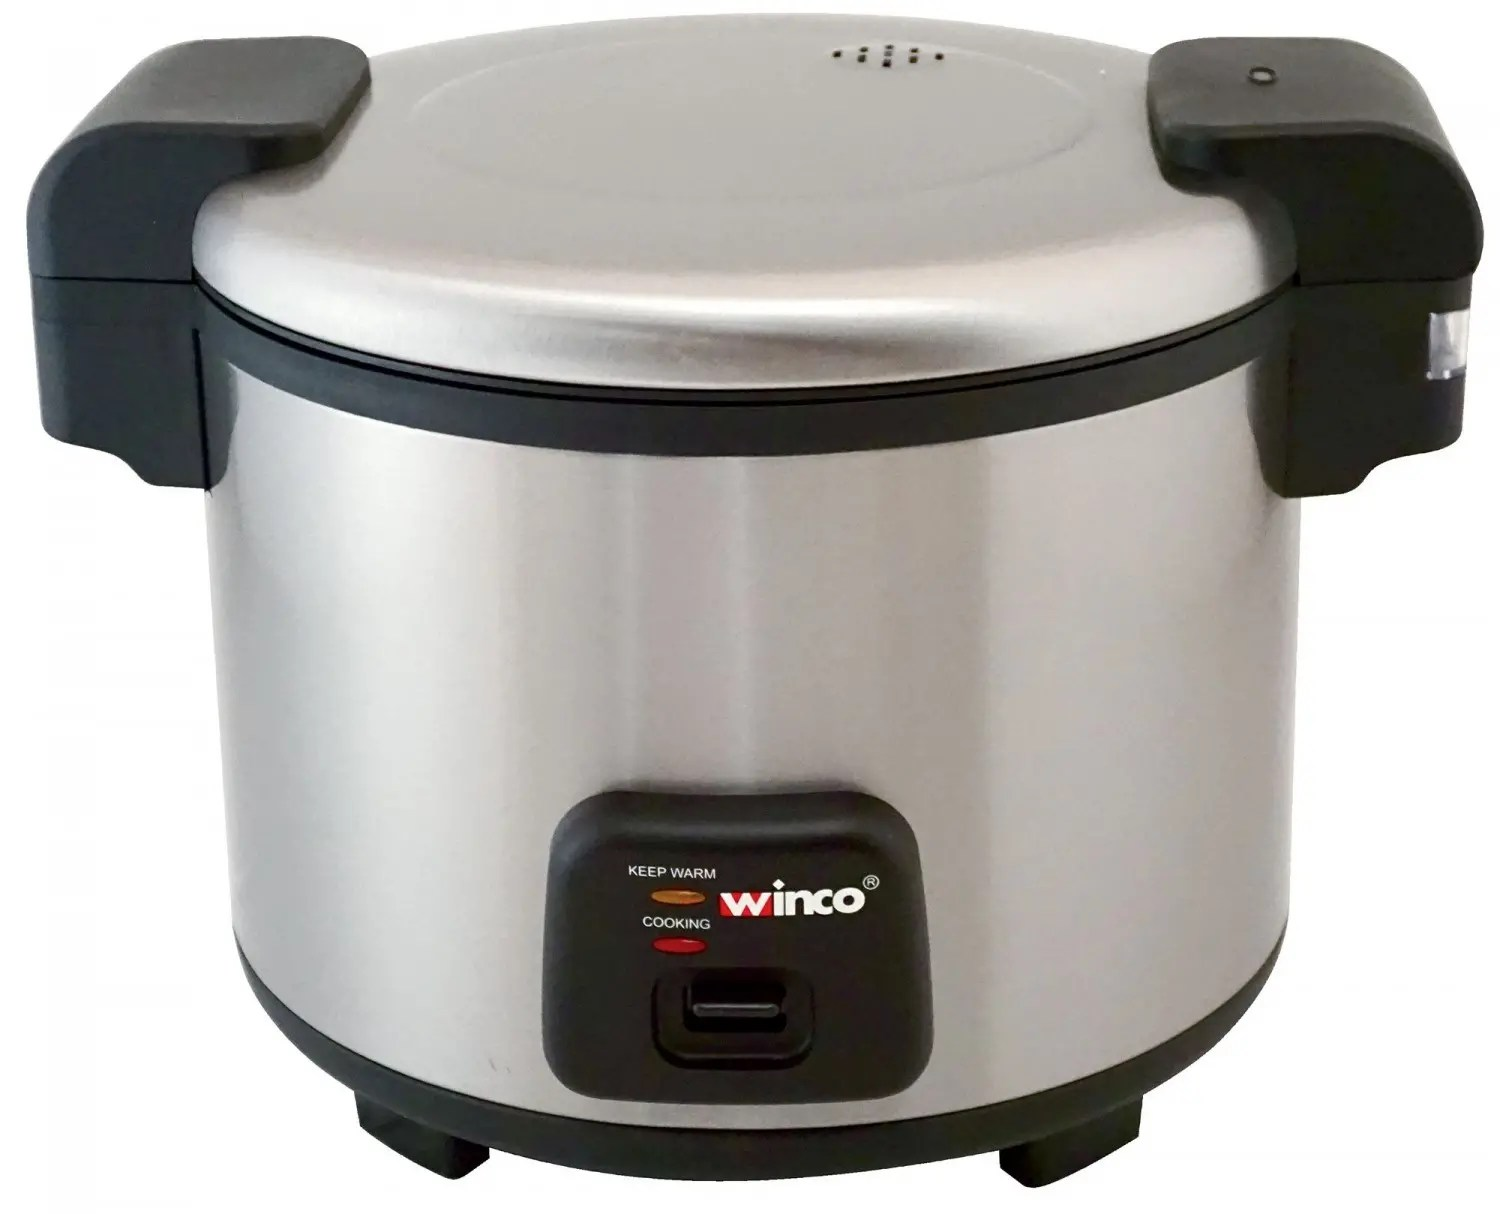 Winco Rc S300 Advanced Electric Rice Cooker Warmer